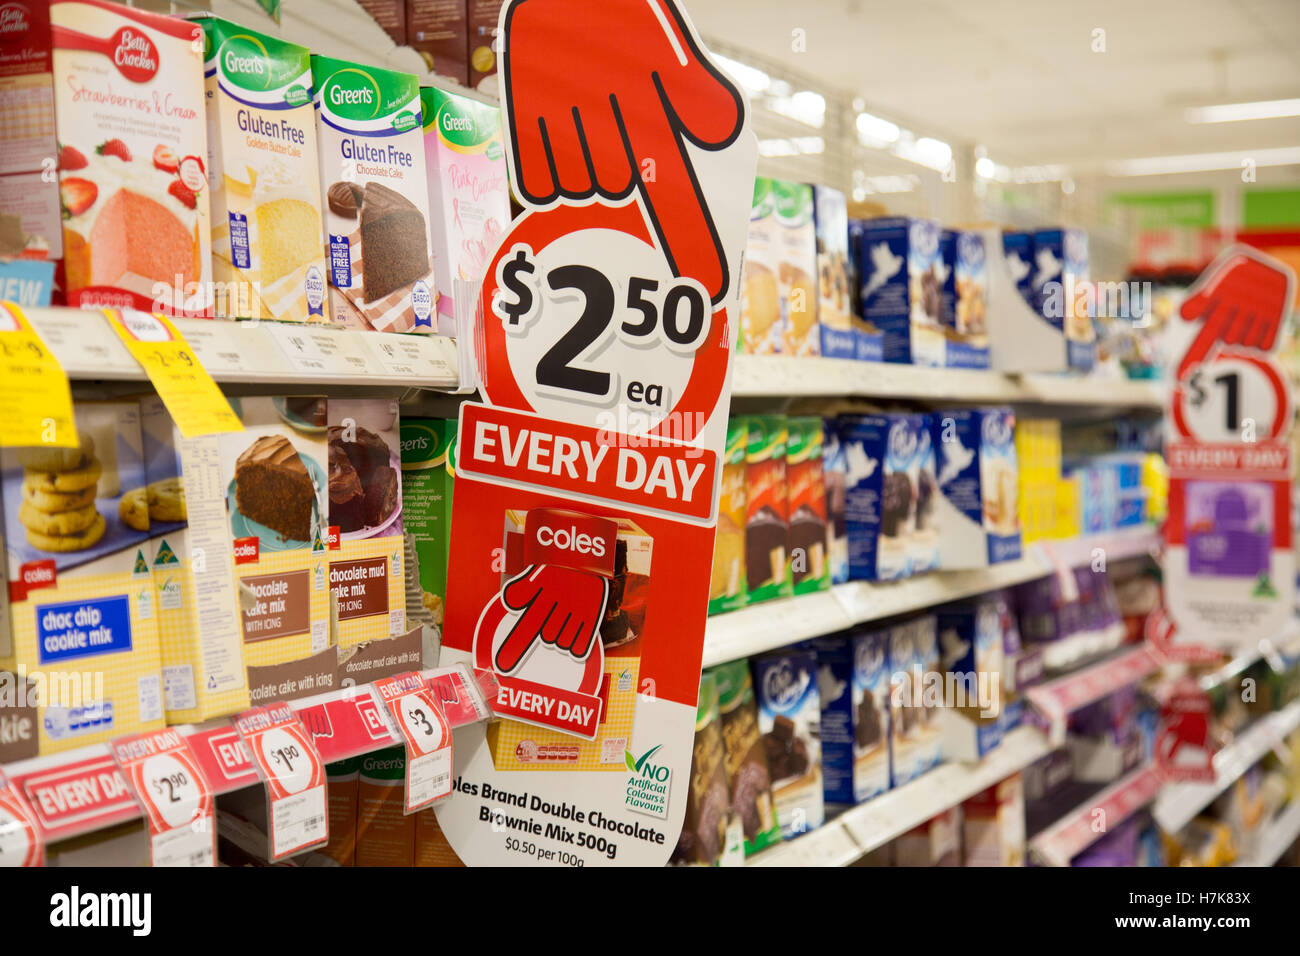 Coles supermarket store in Warriewood Sydney displaying the hands down marketing sign slogan - Stock Image